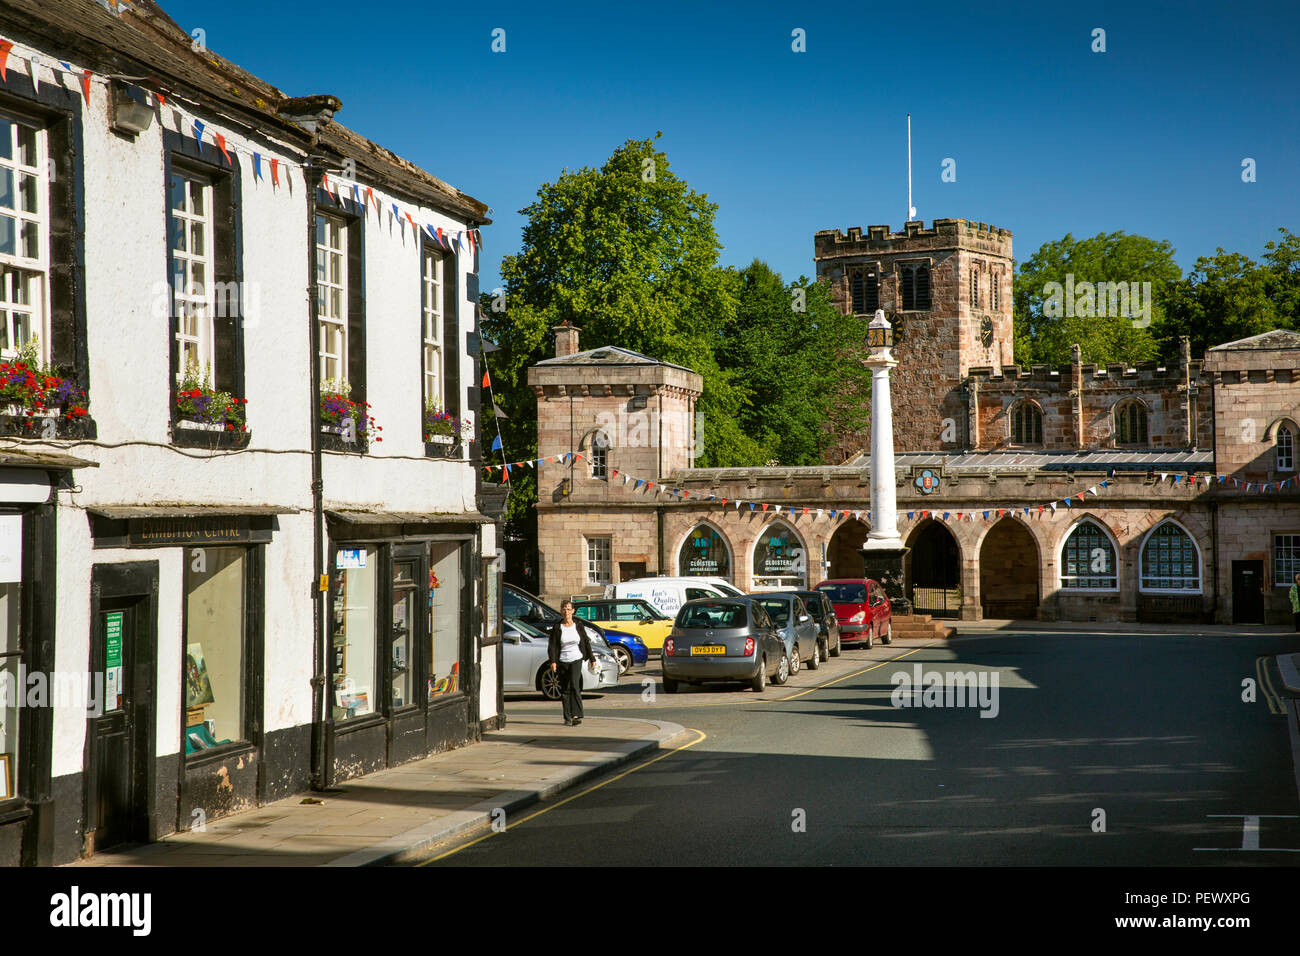 UK, Cumbria, Eden Valley, Appleby, Boroughgate, Moot Hall and 1811 cloisters outside St Lawrence's Church - Stock Image